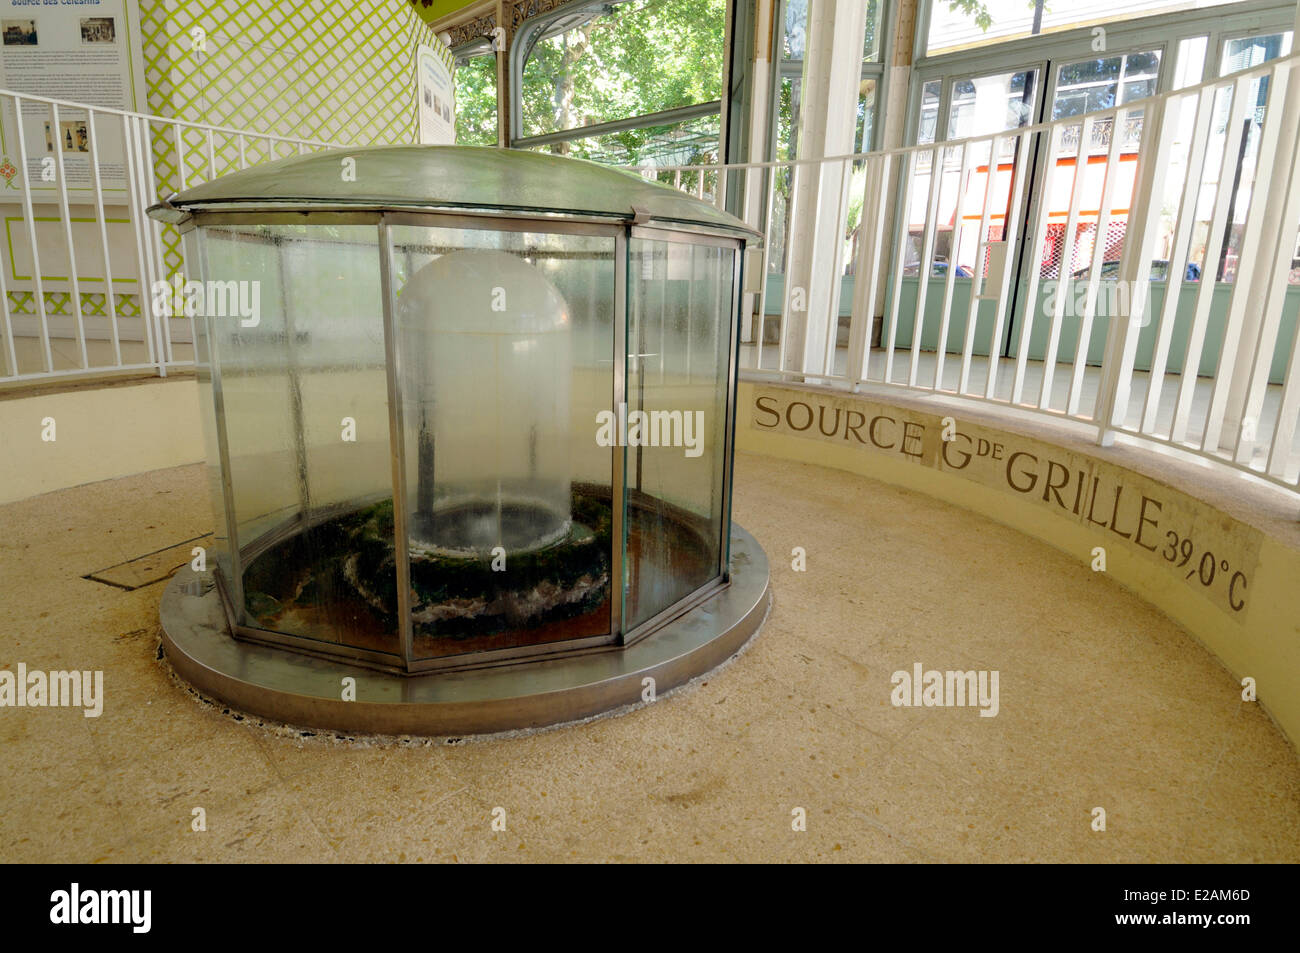 France, Allier, Vichy, Hall of the Sources, fountain of Grande Grille under glass - Stock Image